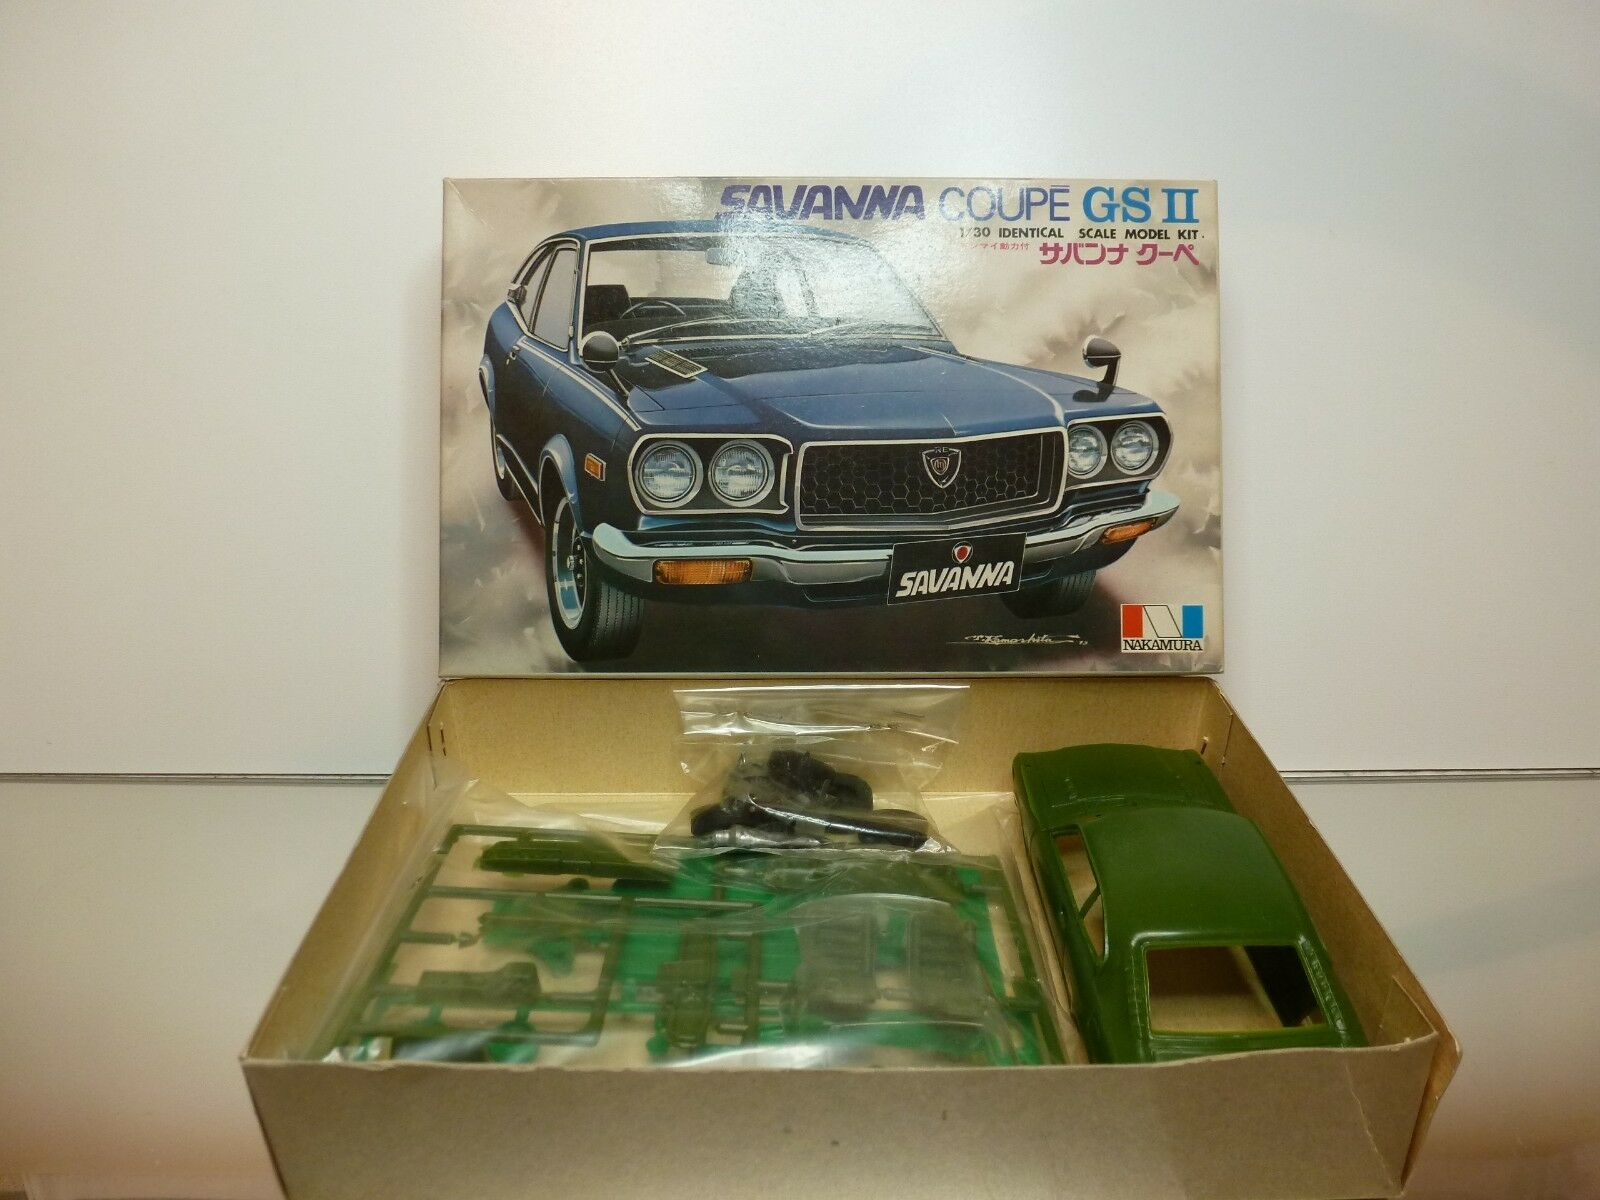 NAKAMURA 4704 KIT (unbuilt) MAZDA SAVANNA COUPE GS II - verde 1 30 - GOOD IN BOX